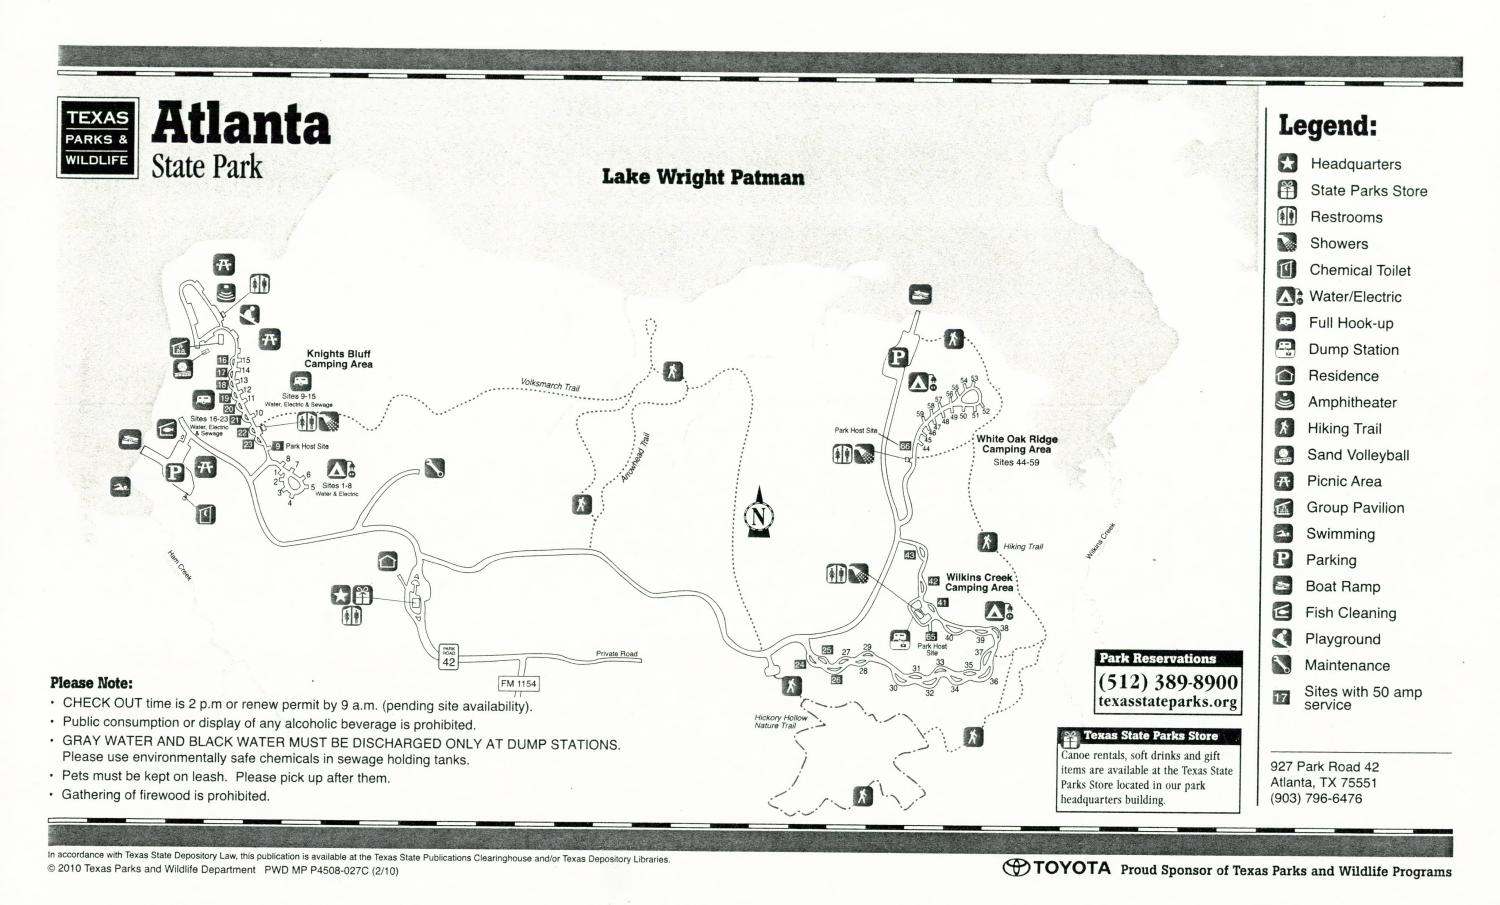 Atlanta State Park, Map of the Atlanta State Park outlining hiking trails and highlighting activities, facilities, and other features such as bathrooms, lodgings, water/electric, etc. It also contains general information for the park and for the Texas Parks and Wildlife Department.,